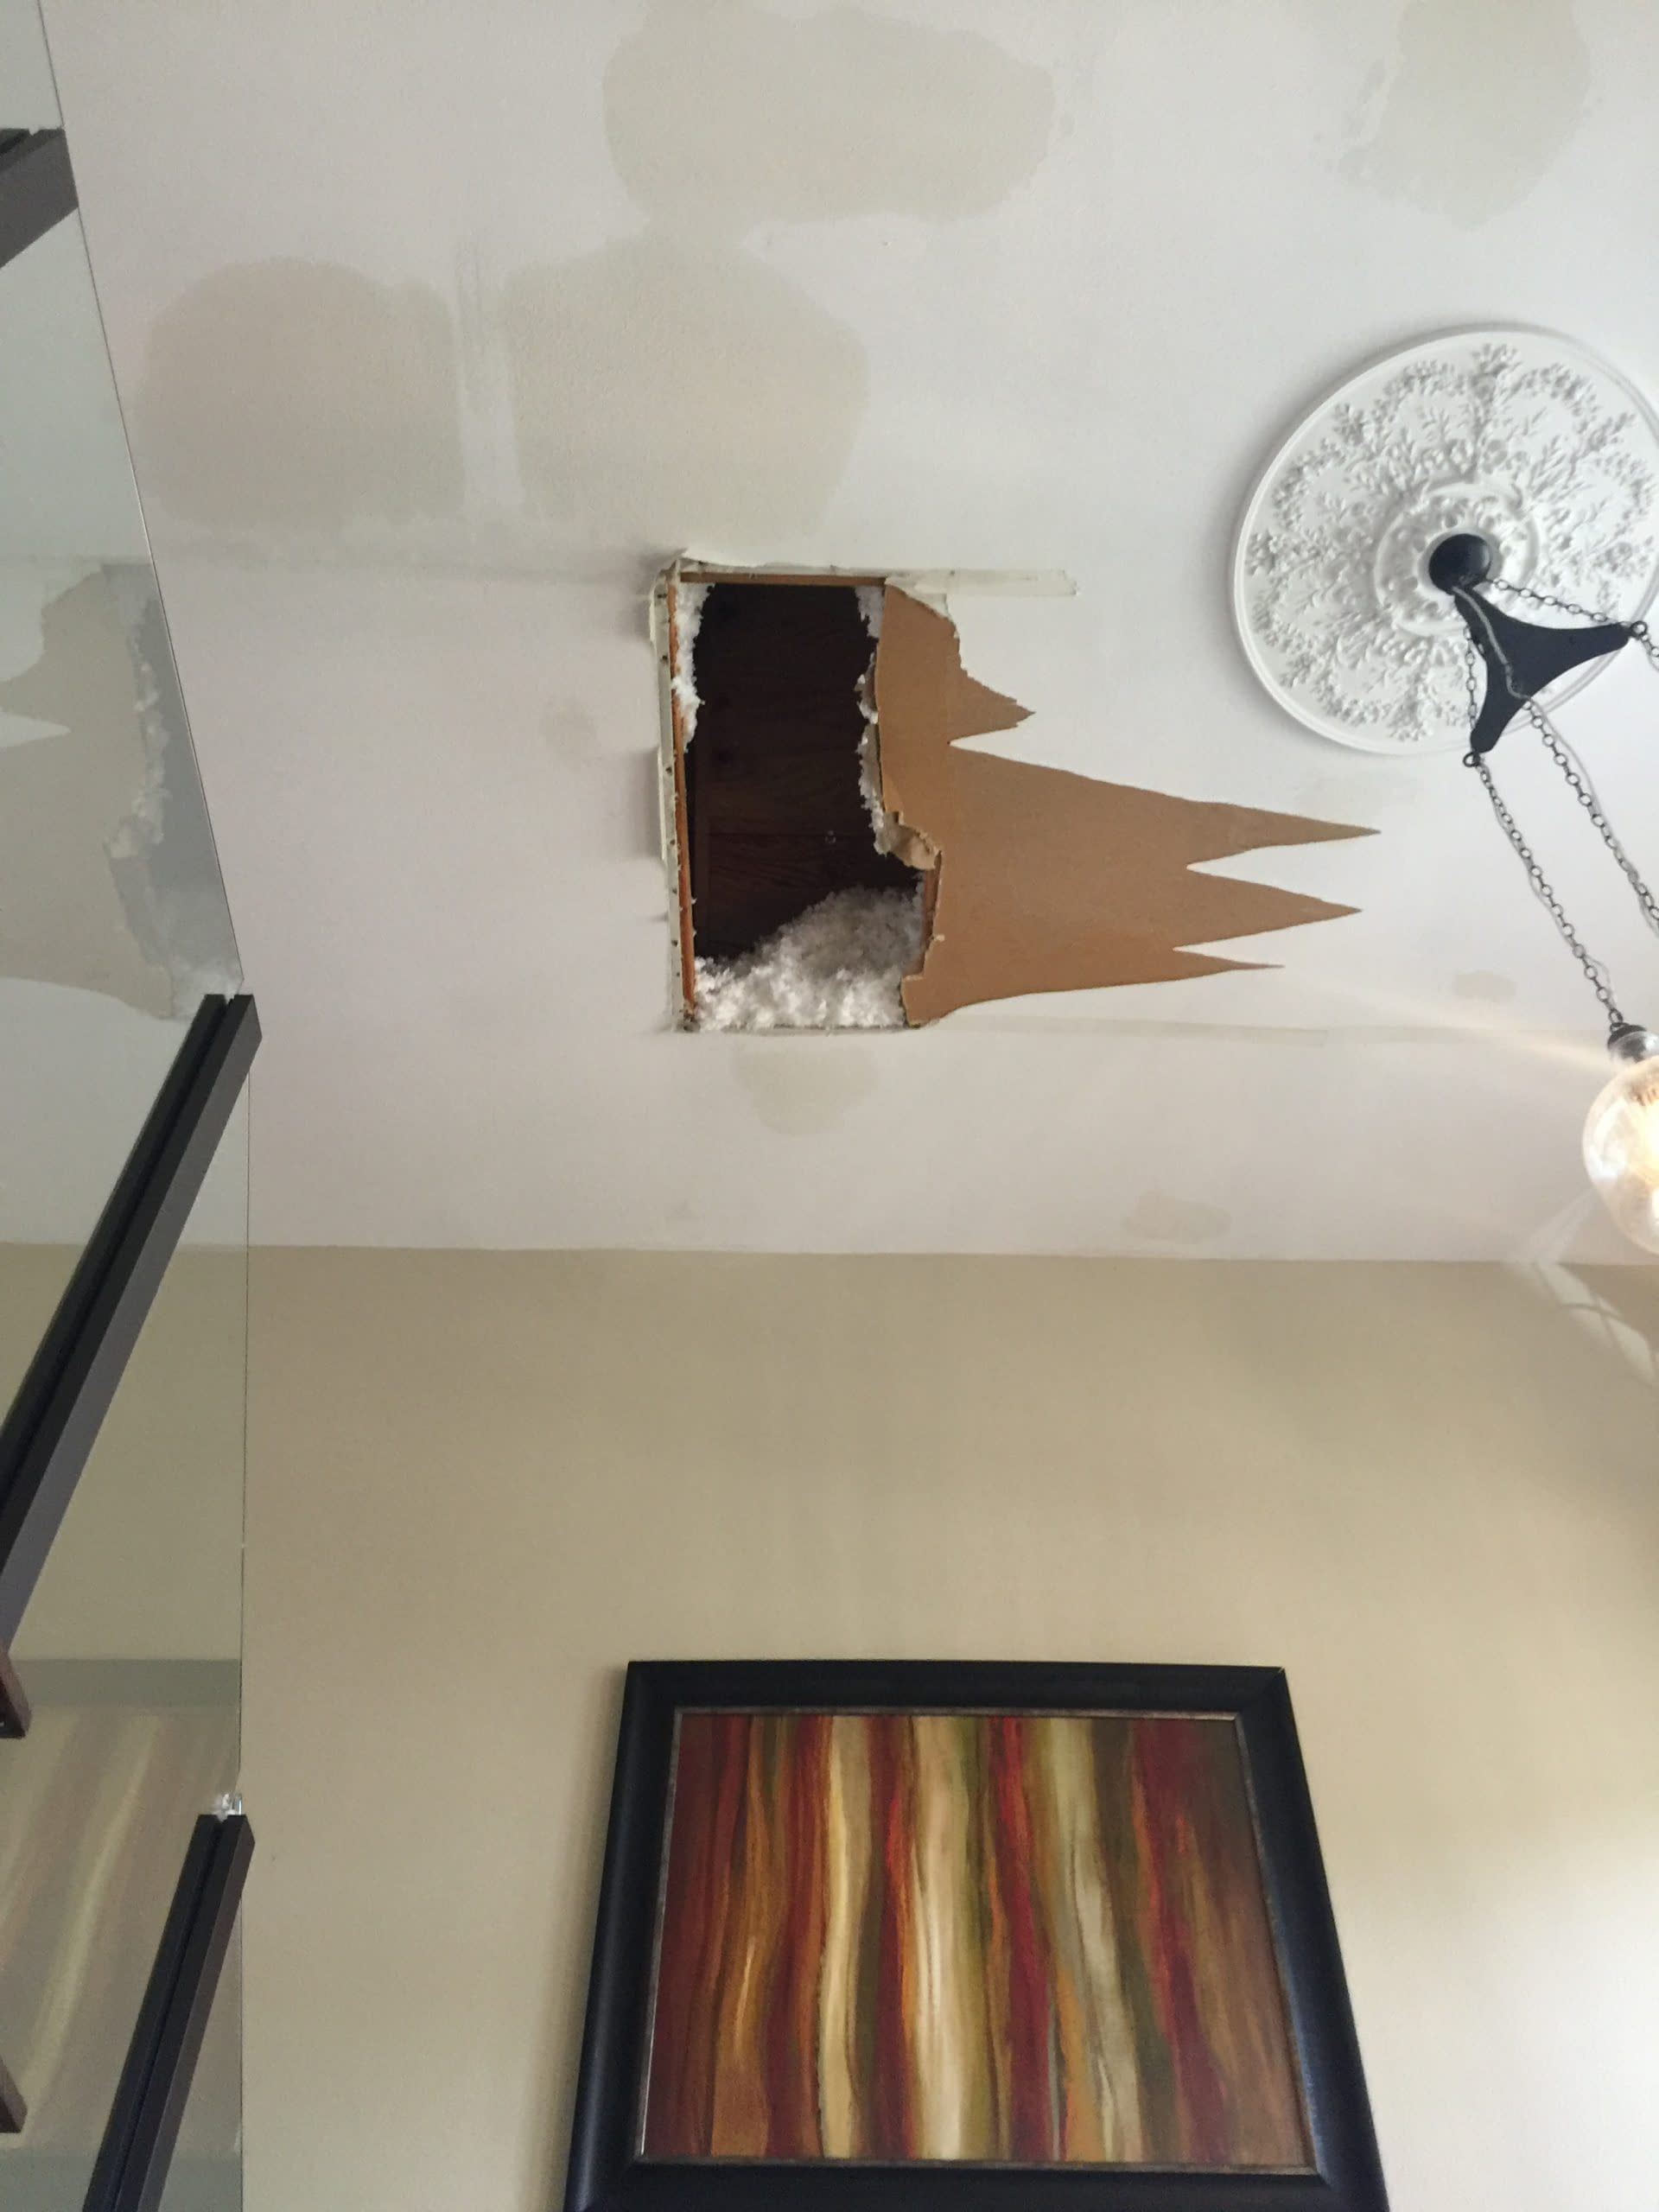 Hole in the ceiling after roof leaked